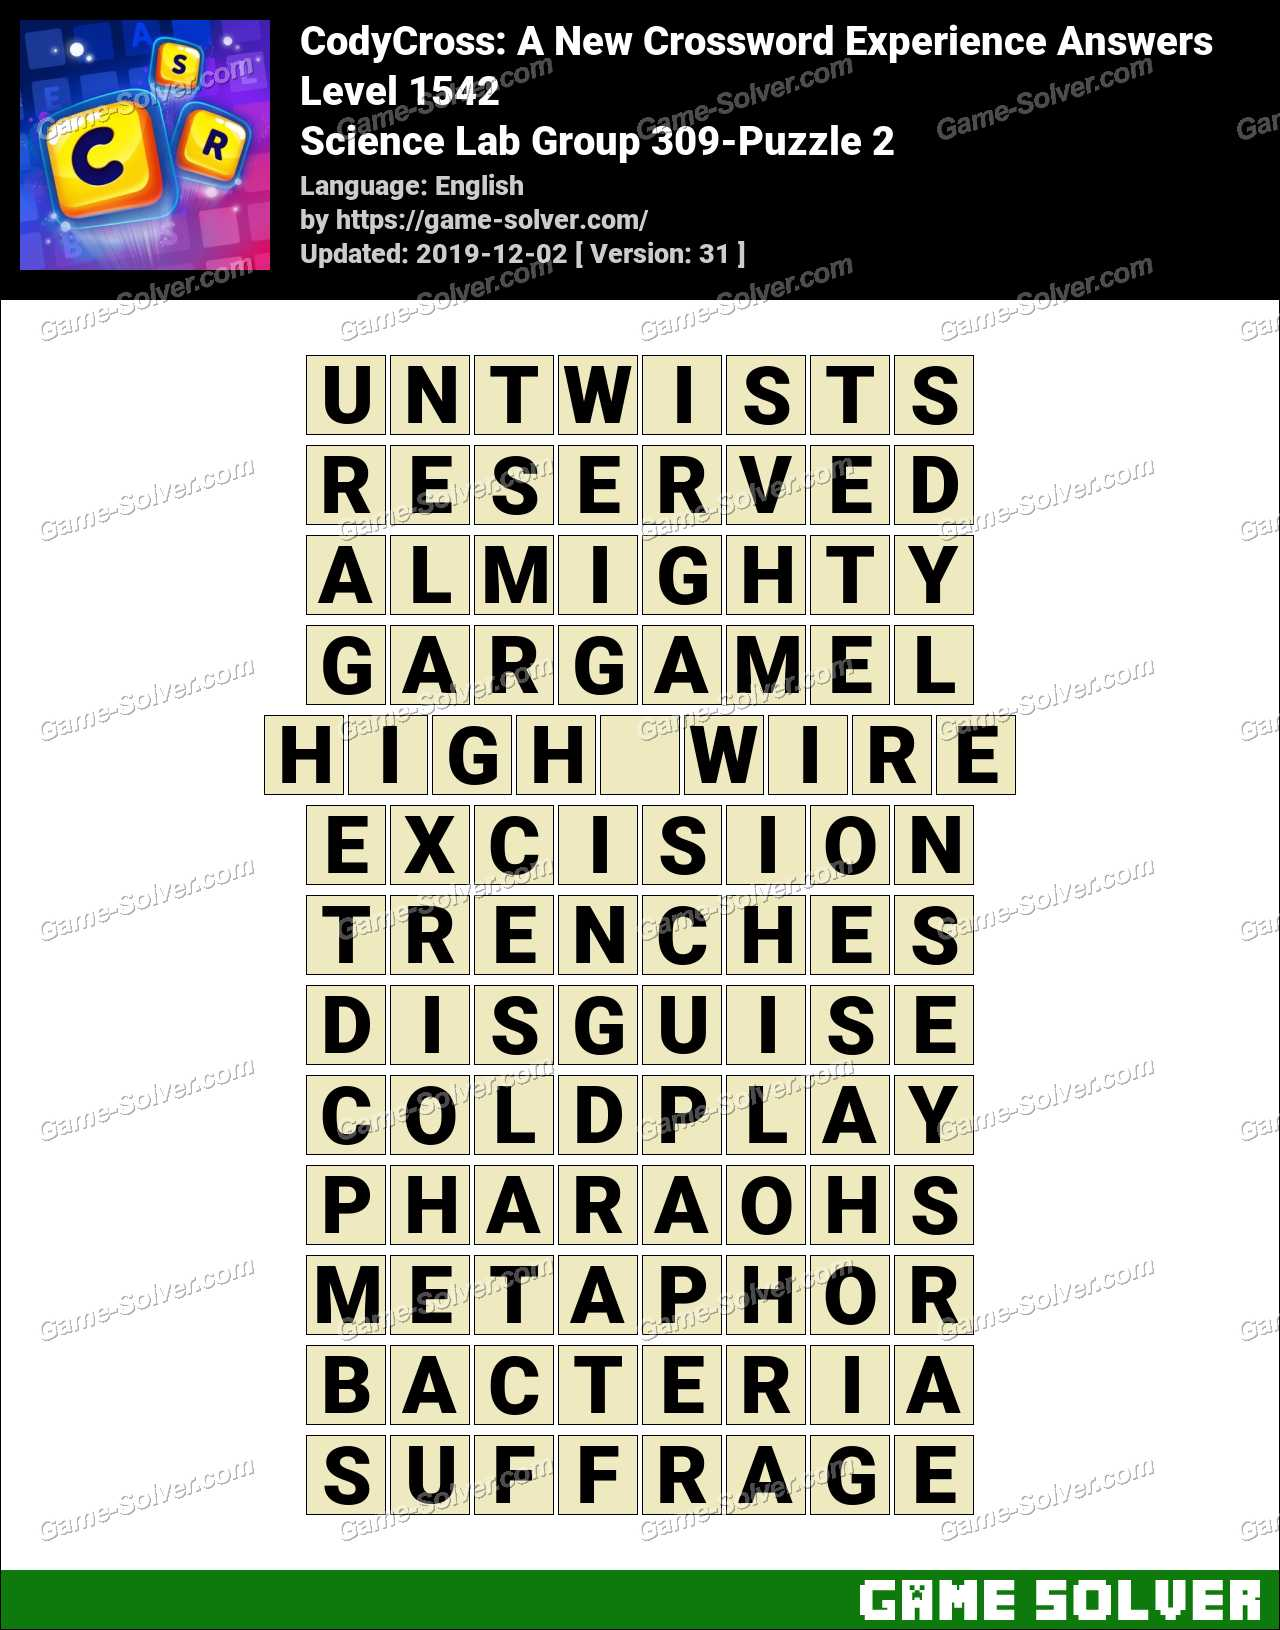 CodyCross Science Lab Group 309-Puzzle 2 Answers